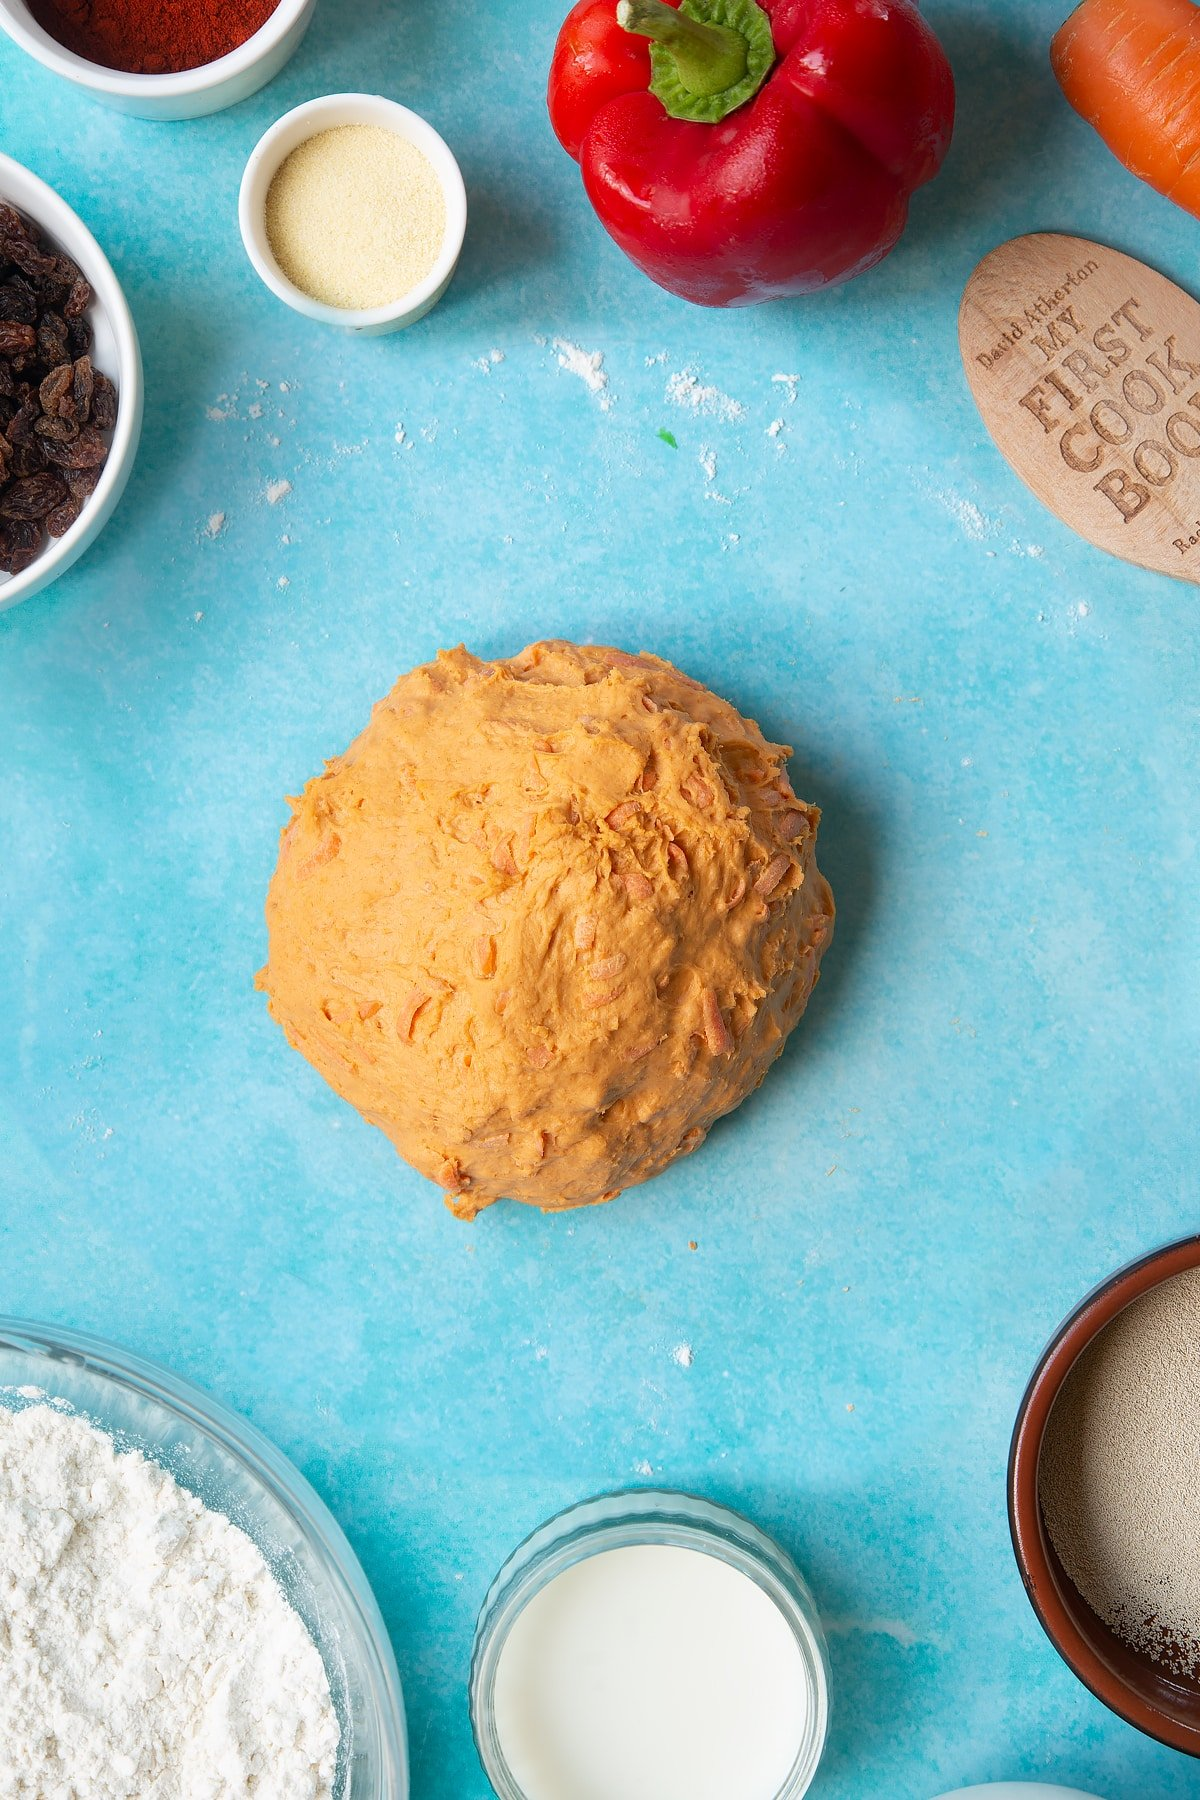 Paprika and carrot bread dough, freshly kneaded. Ingredient to make bread snakes surround the dough.